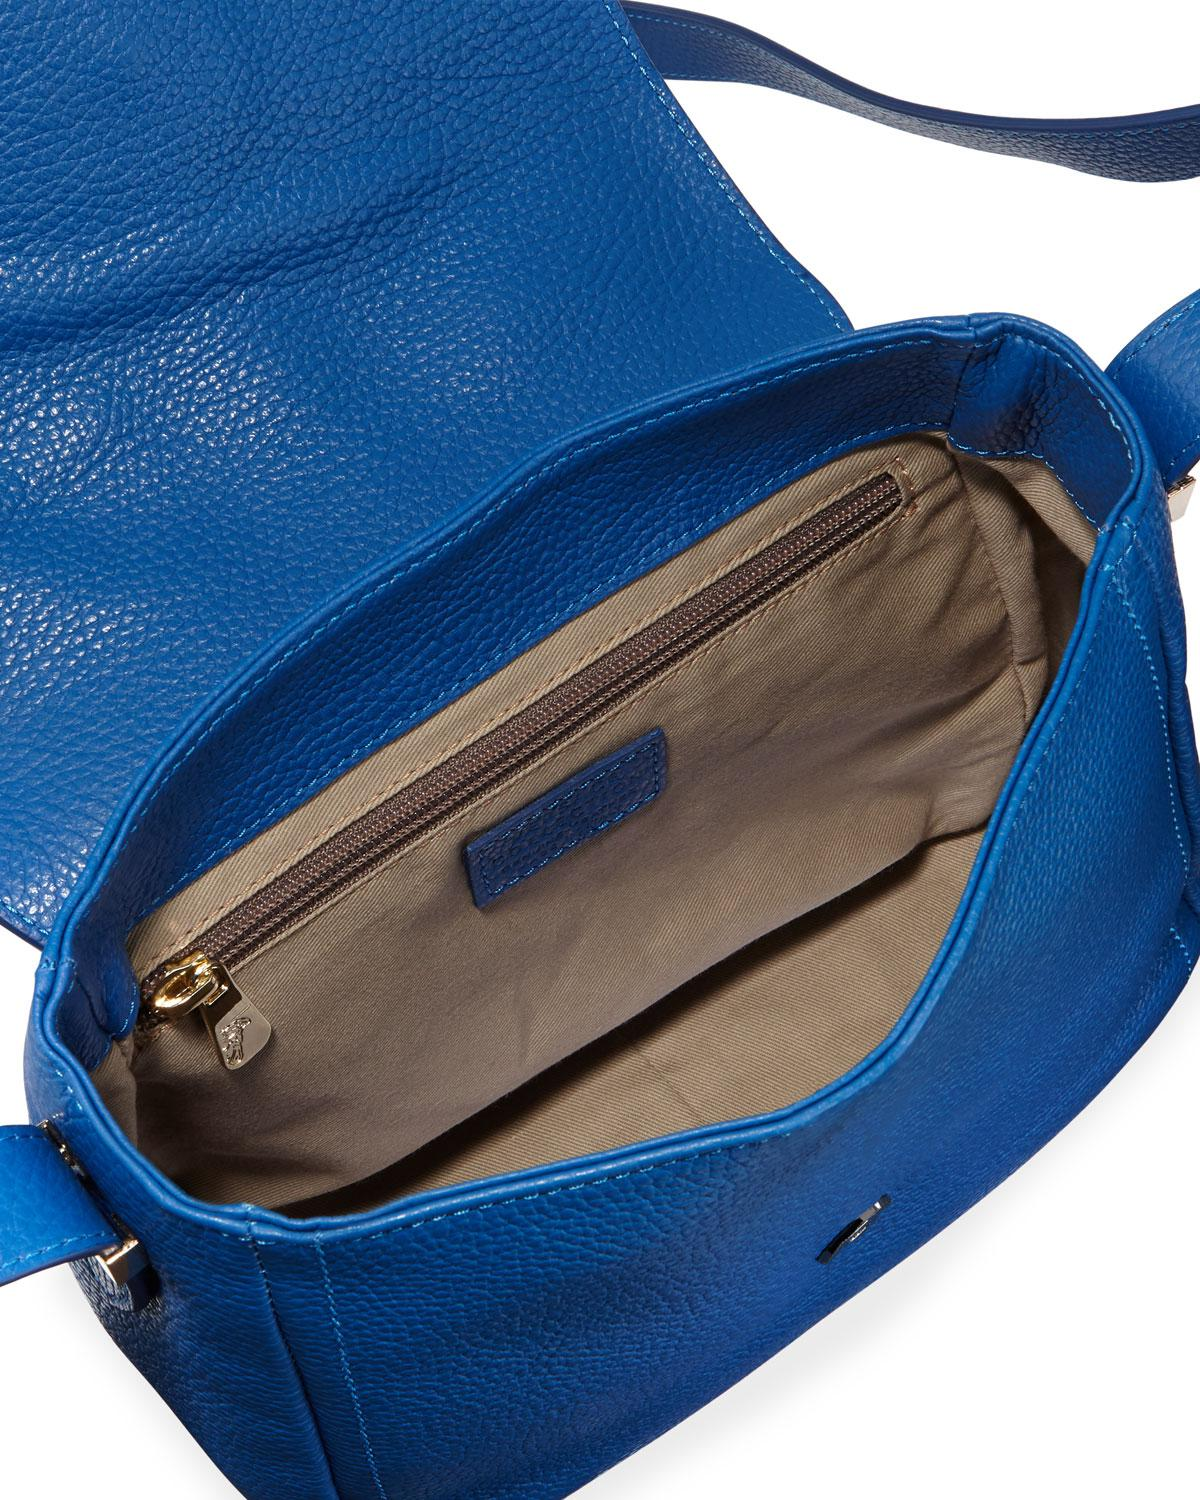 5e61e4158f0a Lyst - Versace Pebbled Leather Shoulder Bag in Blue